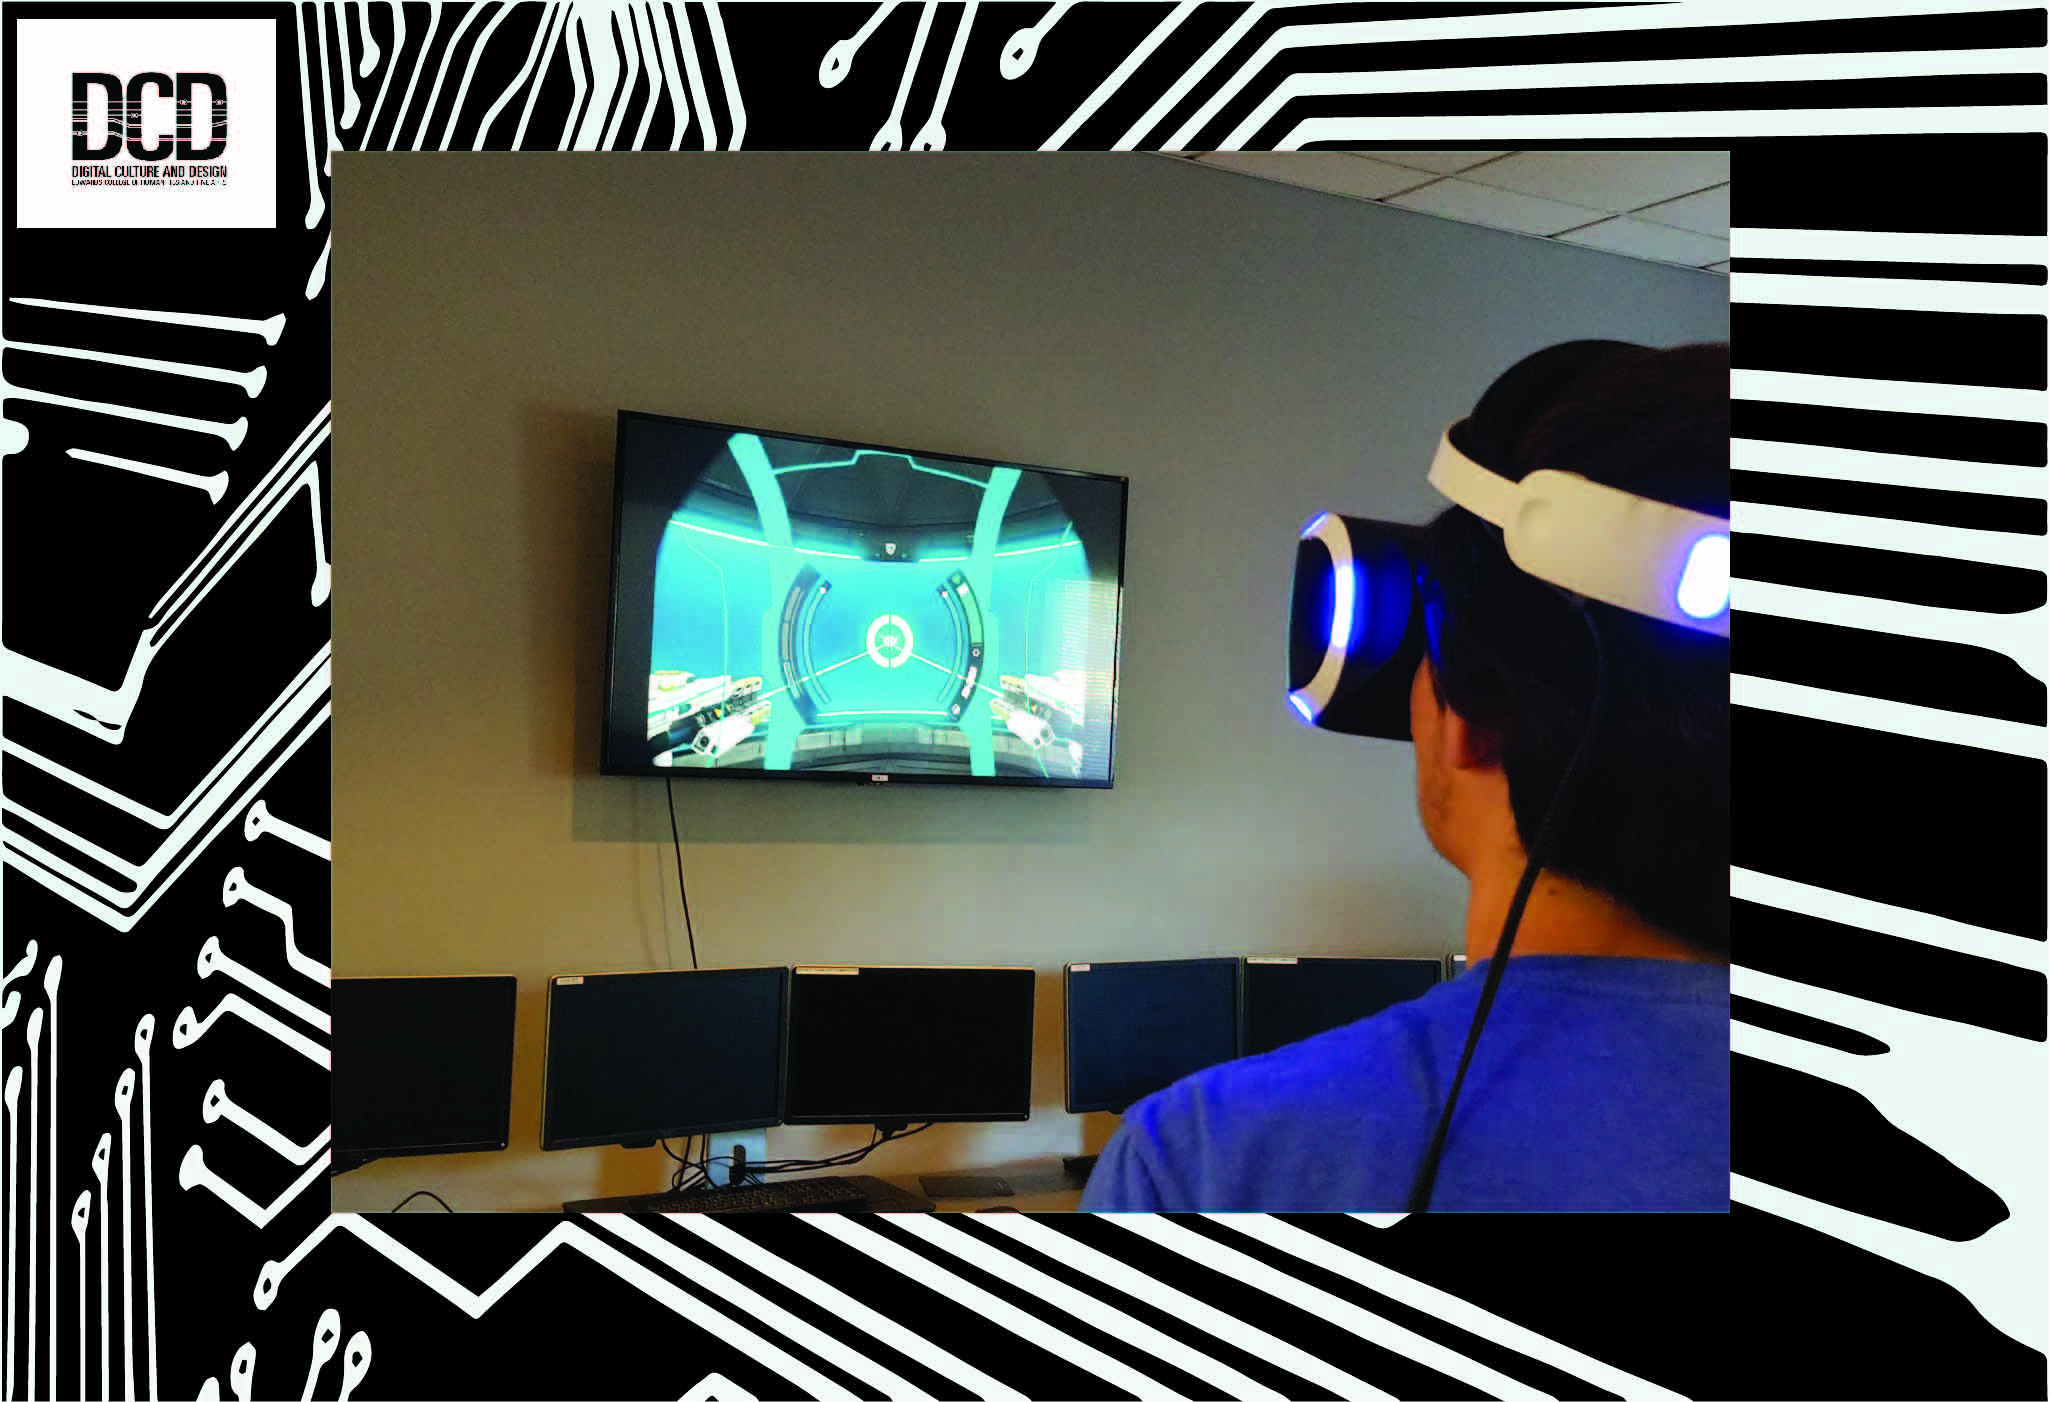 DCD Student Virtual Reality - Carousel Slide (983x672) February 2018 JPEG